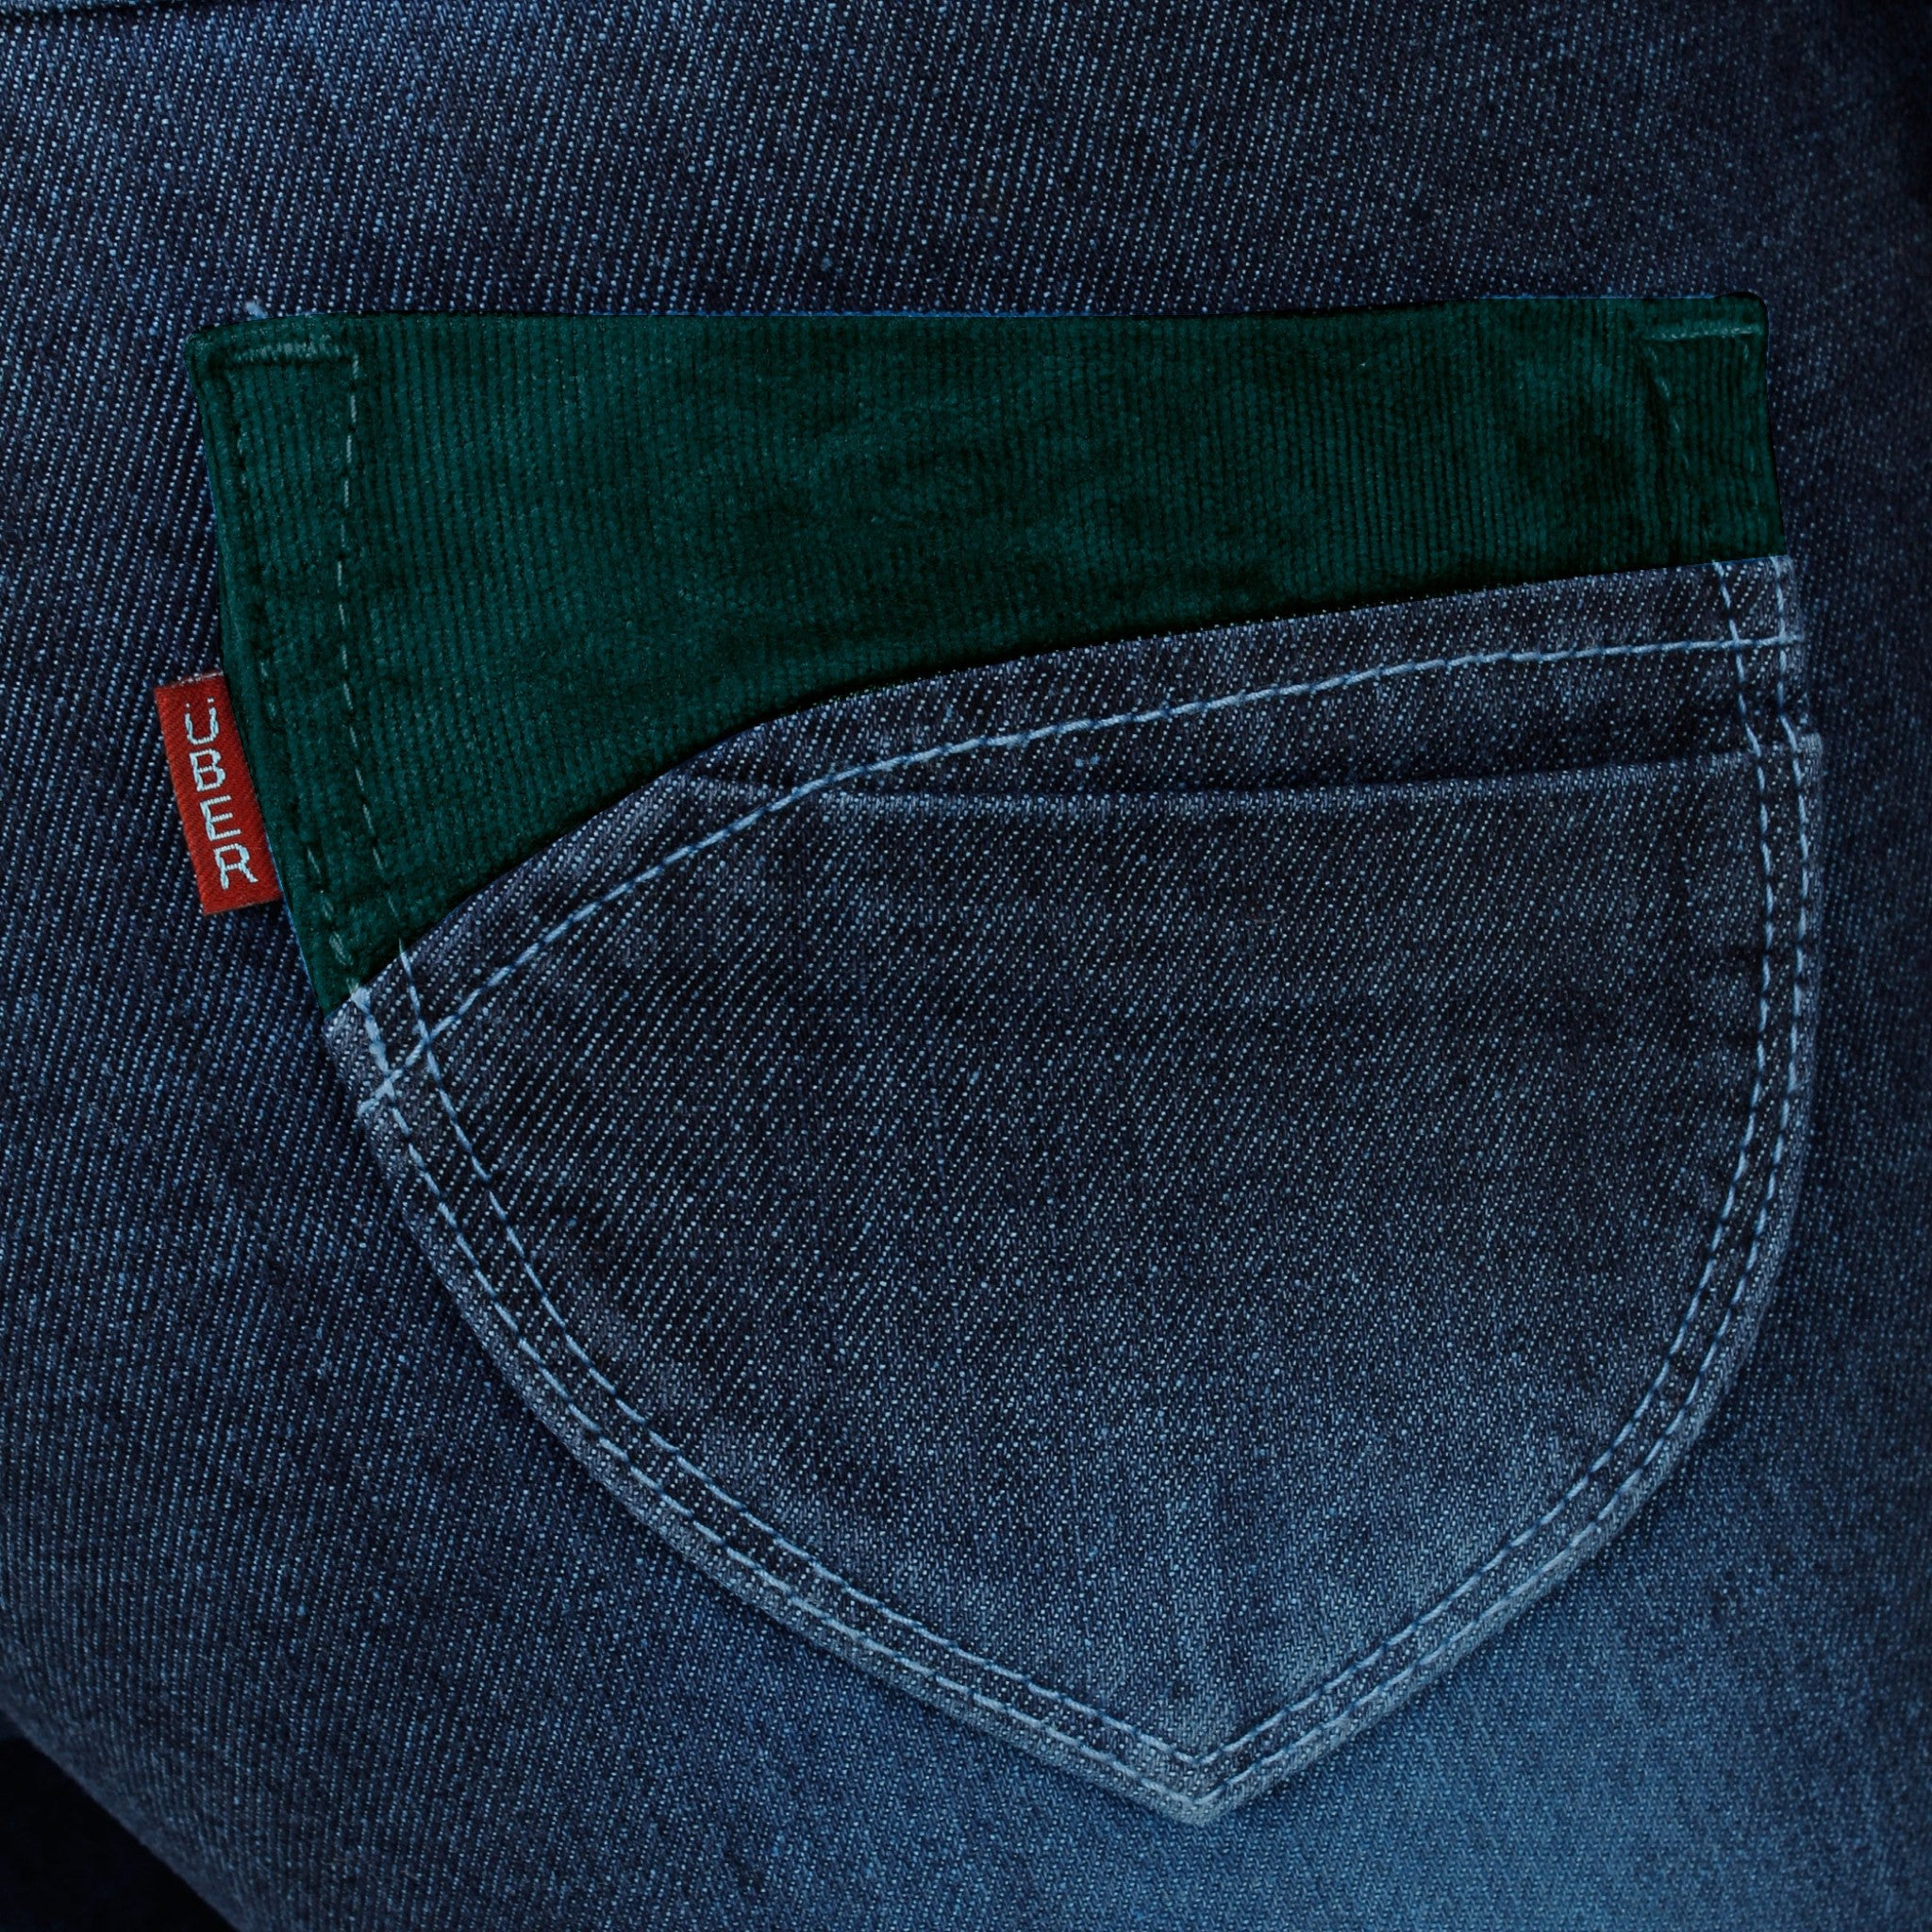 Midnight Blue Denim Capri back side pocket